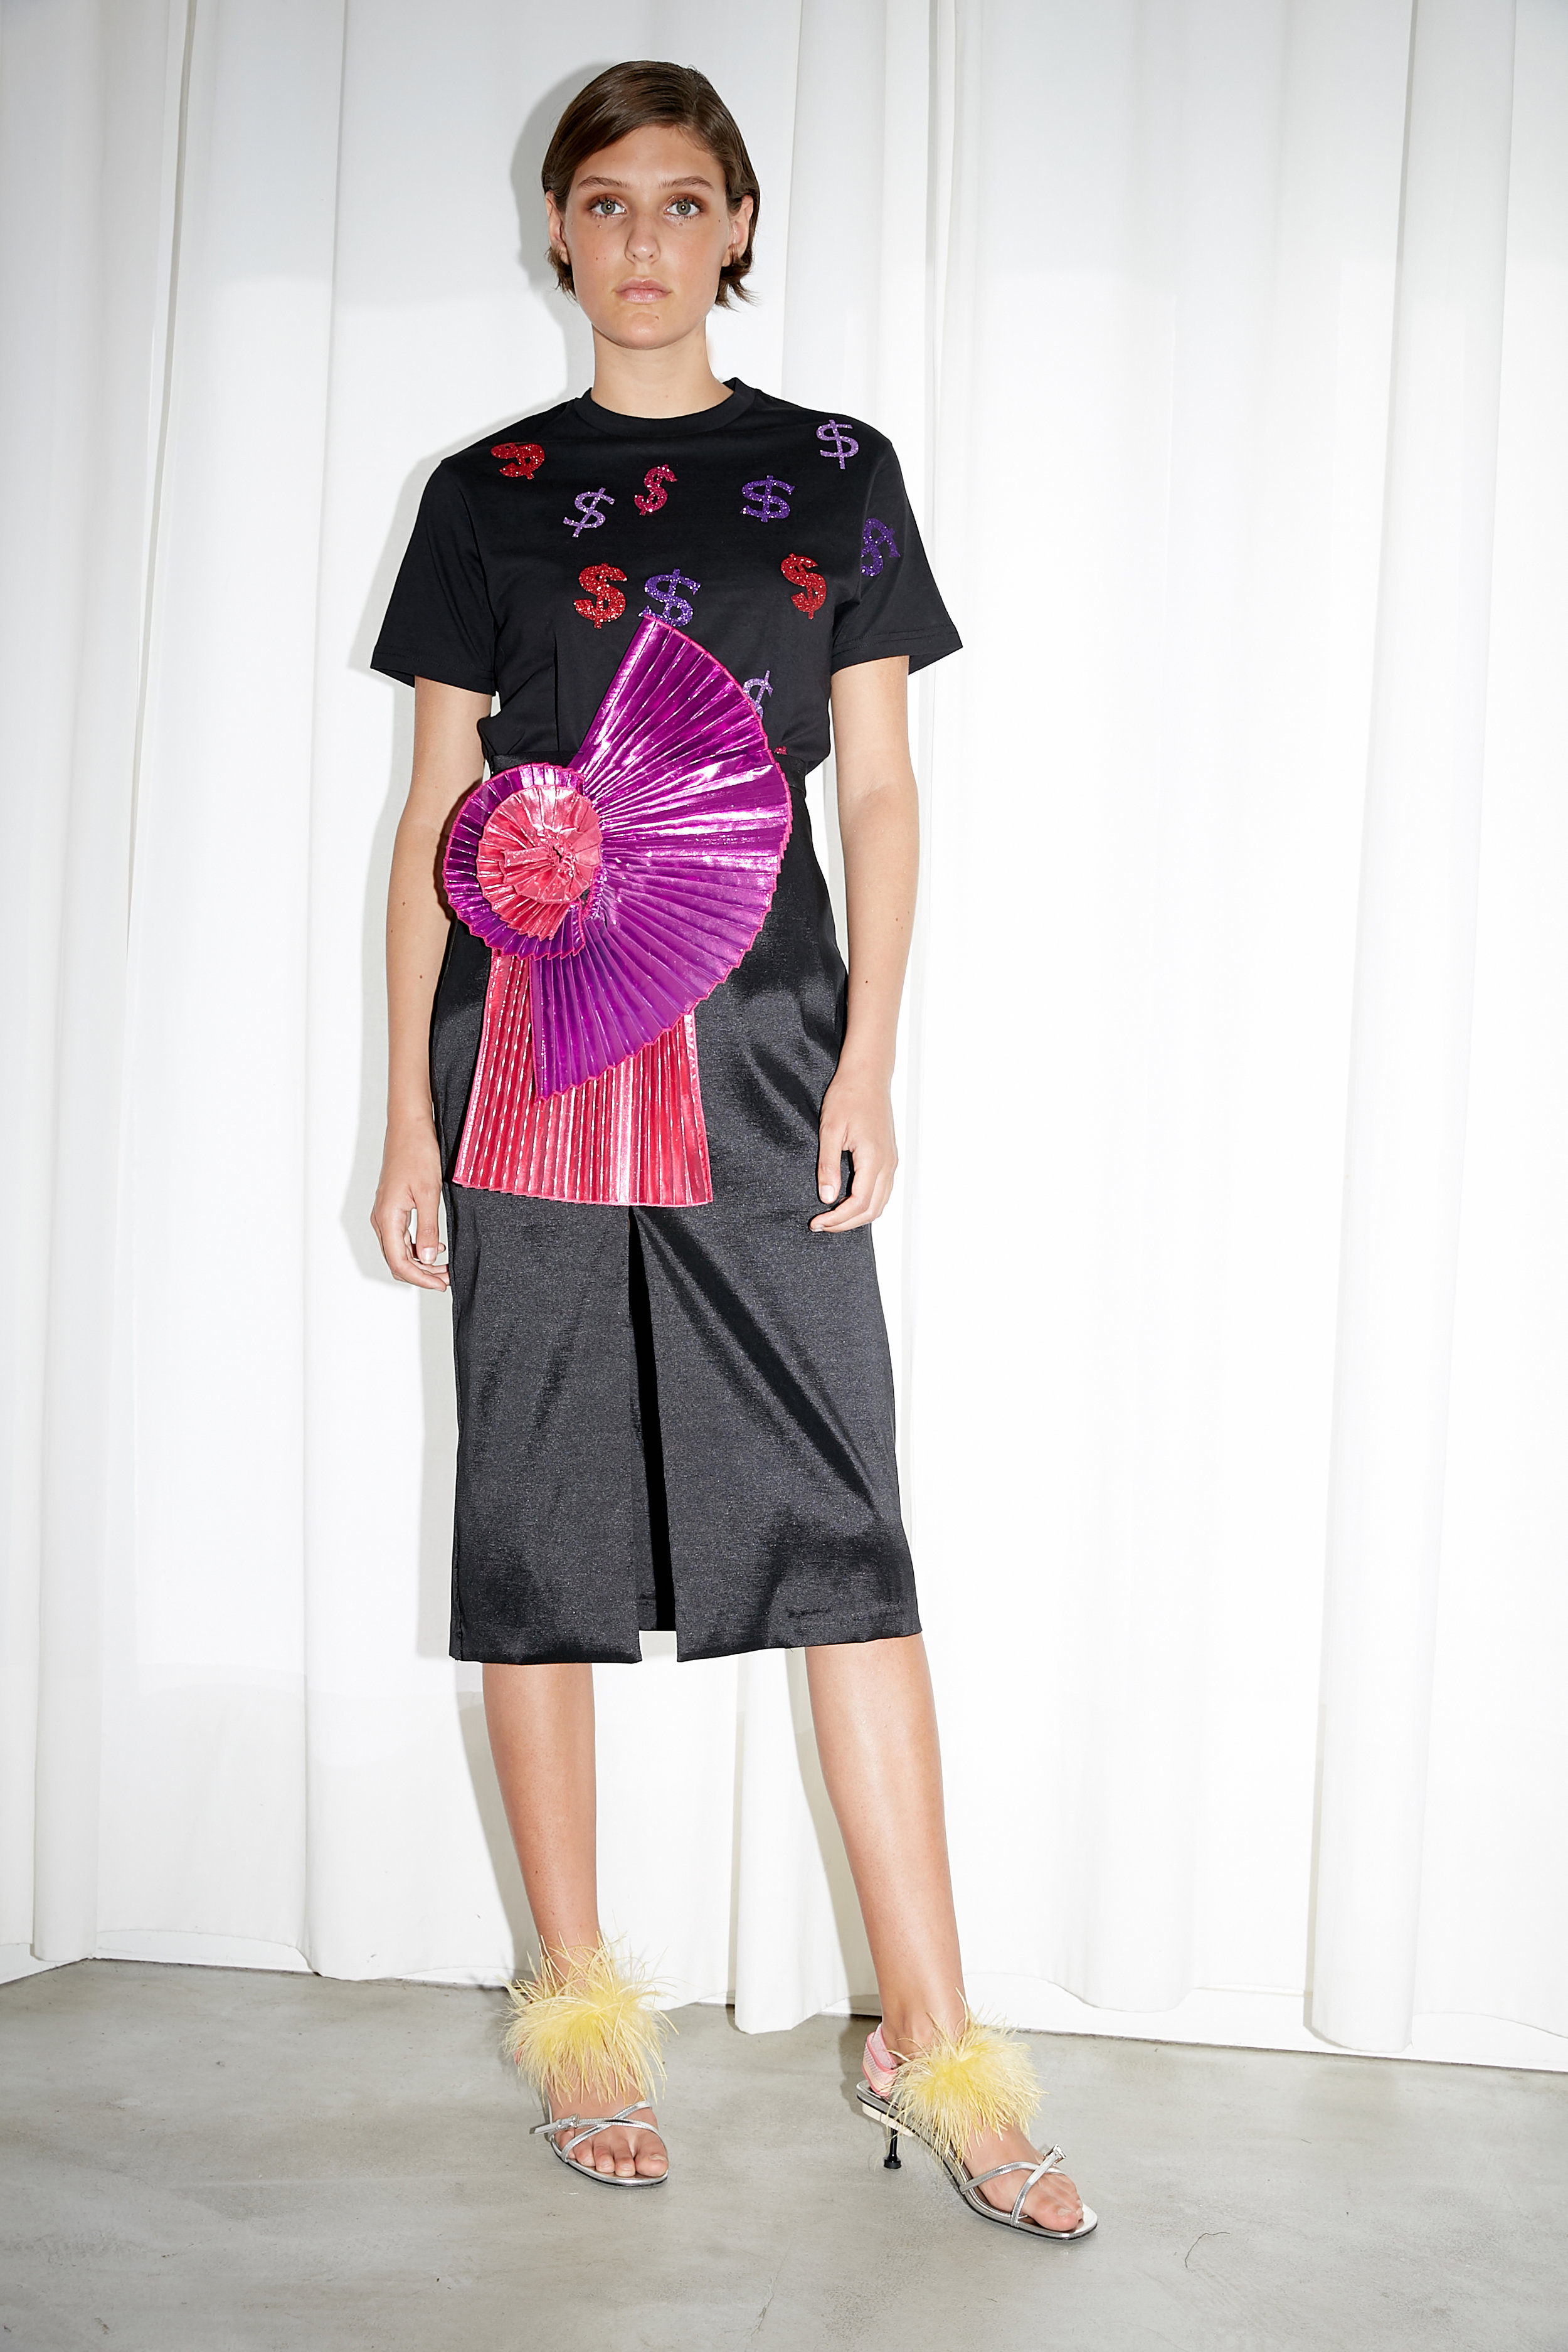 Model stands in black t-shirt printed with sparkling dollar signs in red, purple and pink and black satin skirt with oversized pleated fn detail at waist